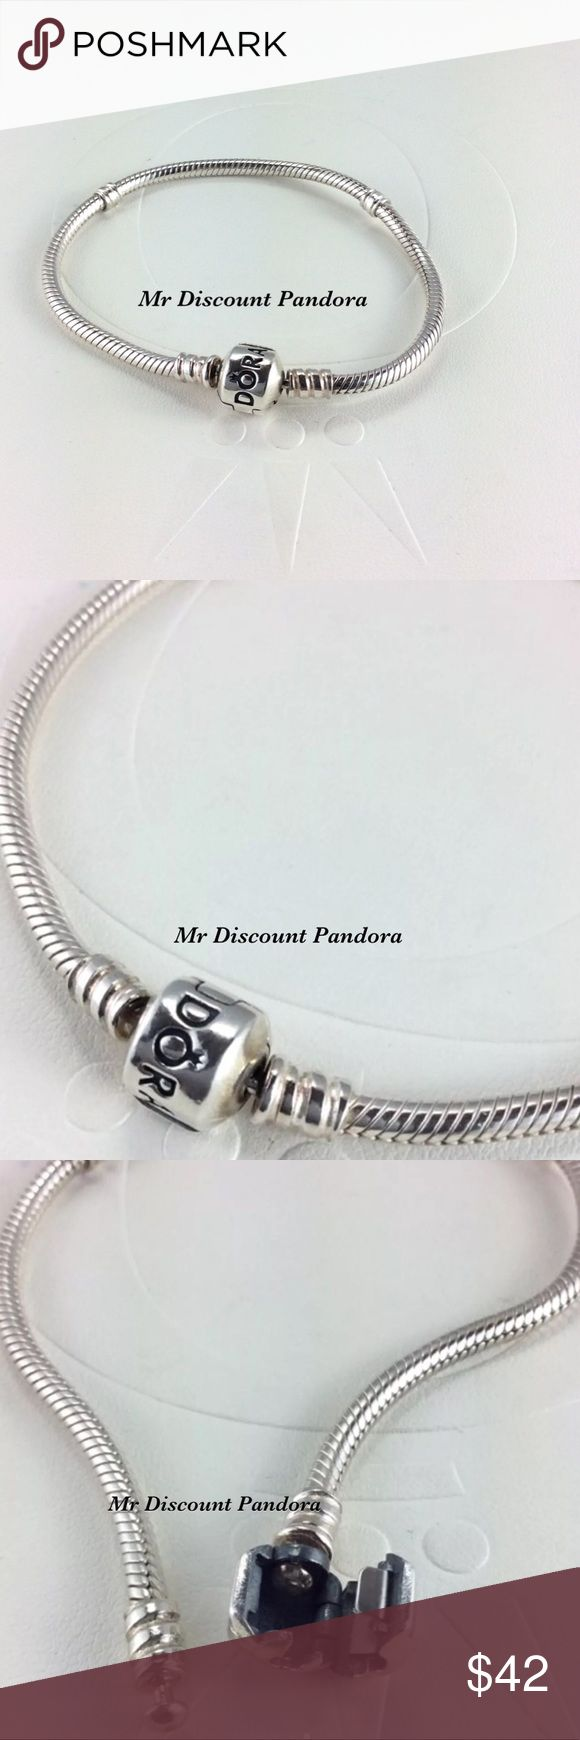 """7.5"""" Pandora Iconic Silver Bracelet This sterling silver charm bracelet is the most popular PANDORA bracelet. Its design features a barrel charm clasp and our innovative threading system, which makes it easy to screw PANDORA charms onto your bracelet and keep them securely where you want them. This is the perfect style to start or add to your charm collection.  Condition: Gently used (Not stiff)  Retail new $70.00 including taxes  Add a Pandora box for $4 more  Bundle/Offer for discount…"""